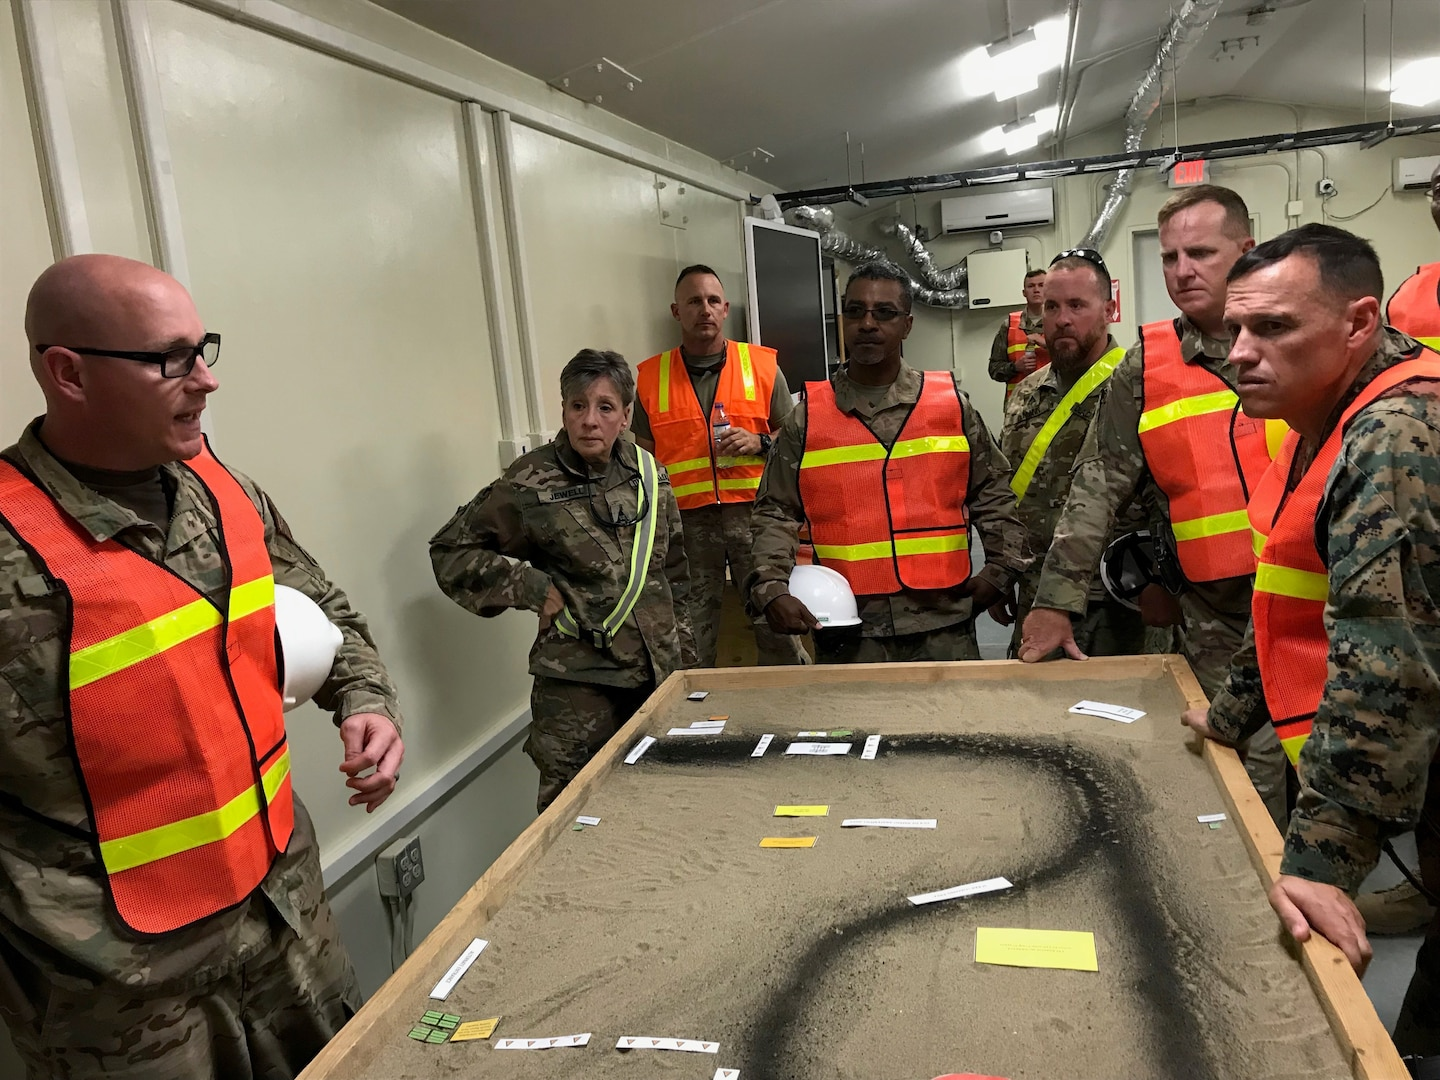 Navy Lt. Cmdr. Steven Harrell, officer-in-charge for DLA Disposition Services in Afghanistan, and Coleen Jewell, area manager, explain mobile expeditionary disposition capabilities and current planning efforts to Marine Brig. Gen. Brian Wolford, the new Bagram Airfield commander, and Army Col. David Raugh, the new Area Support Group-Afghanistan commander.  Pictured from left to right of  Harrell and Jewell are Craig Barrett, outgoing area manager; Jose Montanez, Bagram site chief, Rick Mann, property disposal specialist; Raugh and Wolford.